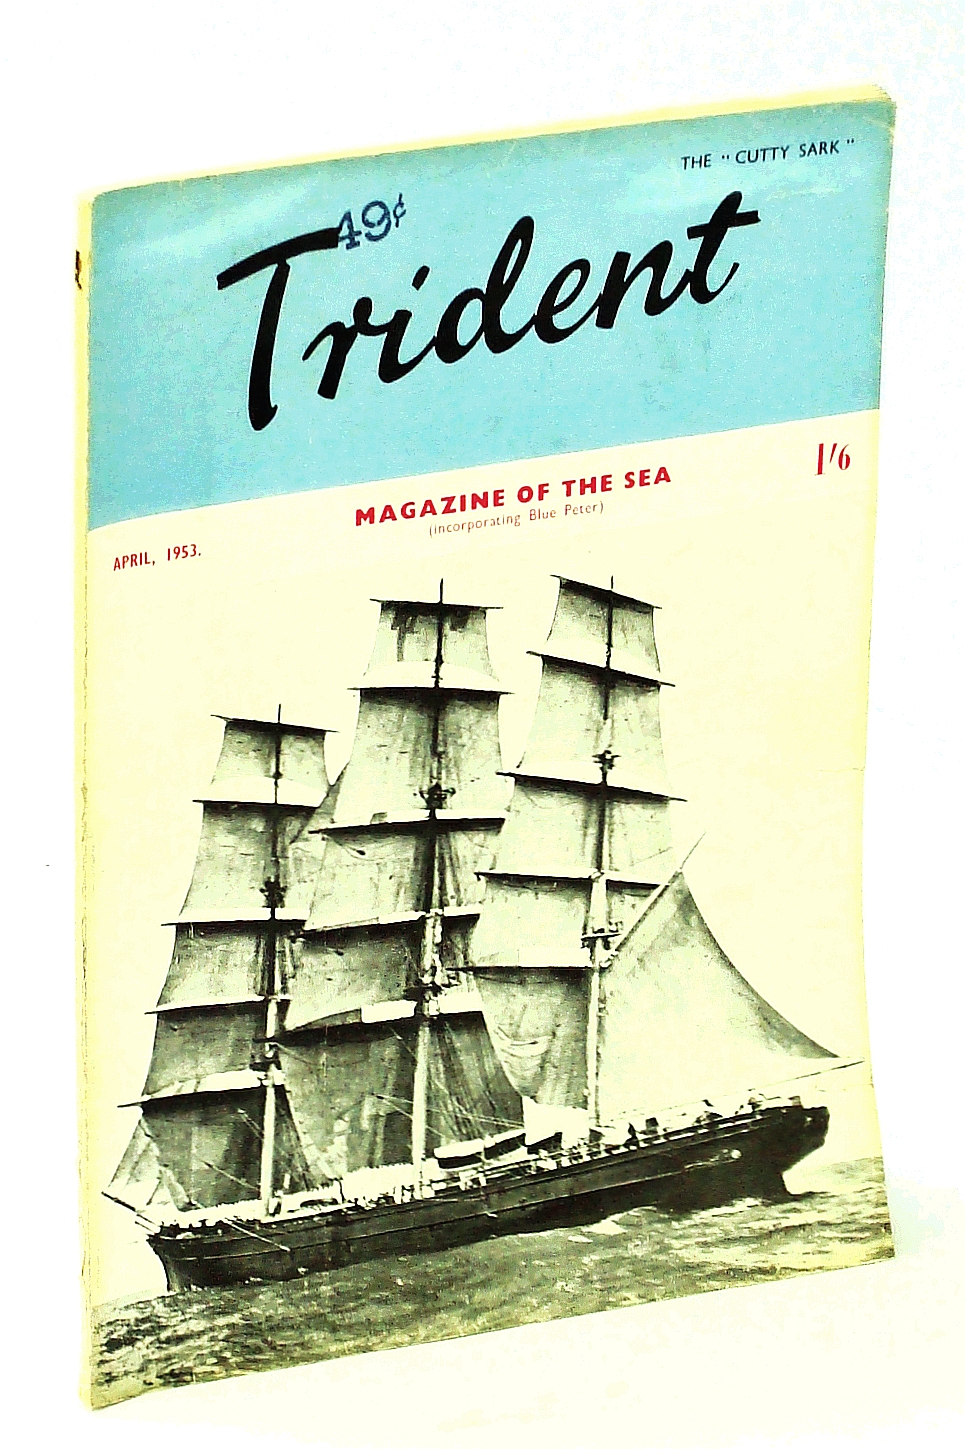 Image for The Trident [Magazine] Incorporating Blue Peter - Magazine of the Sea, April [Apr.], 1953, Vol. 15, No. 168 - Cutty Sark Cover Photo